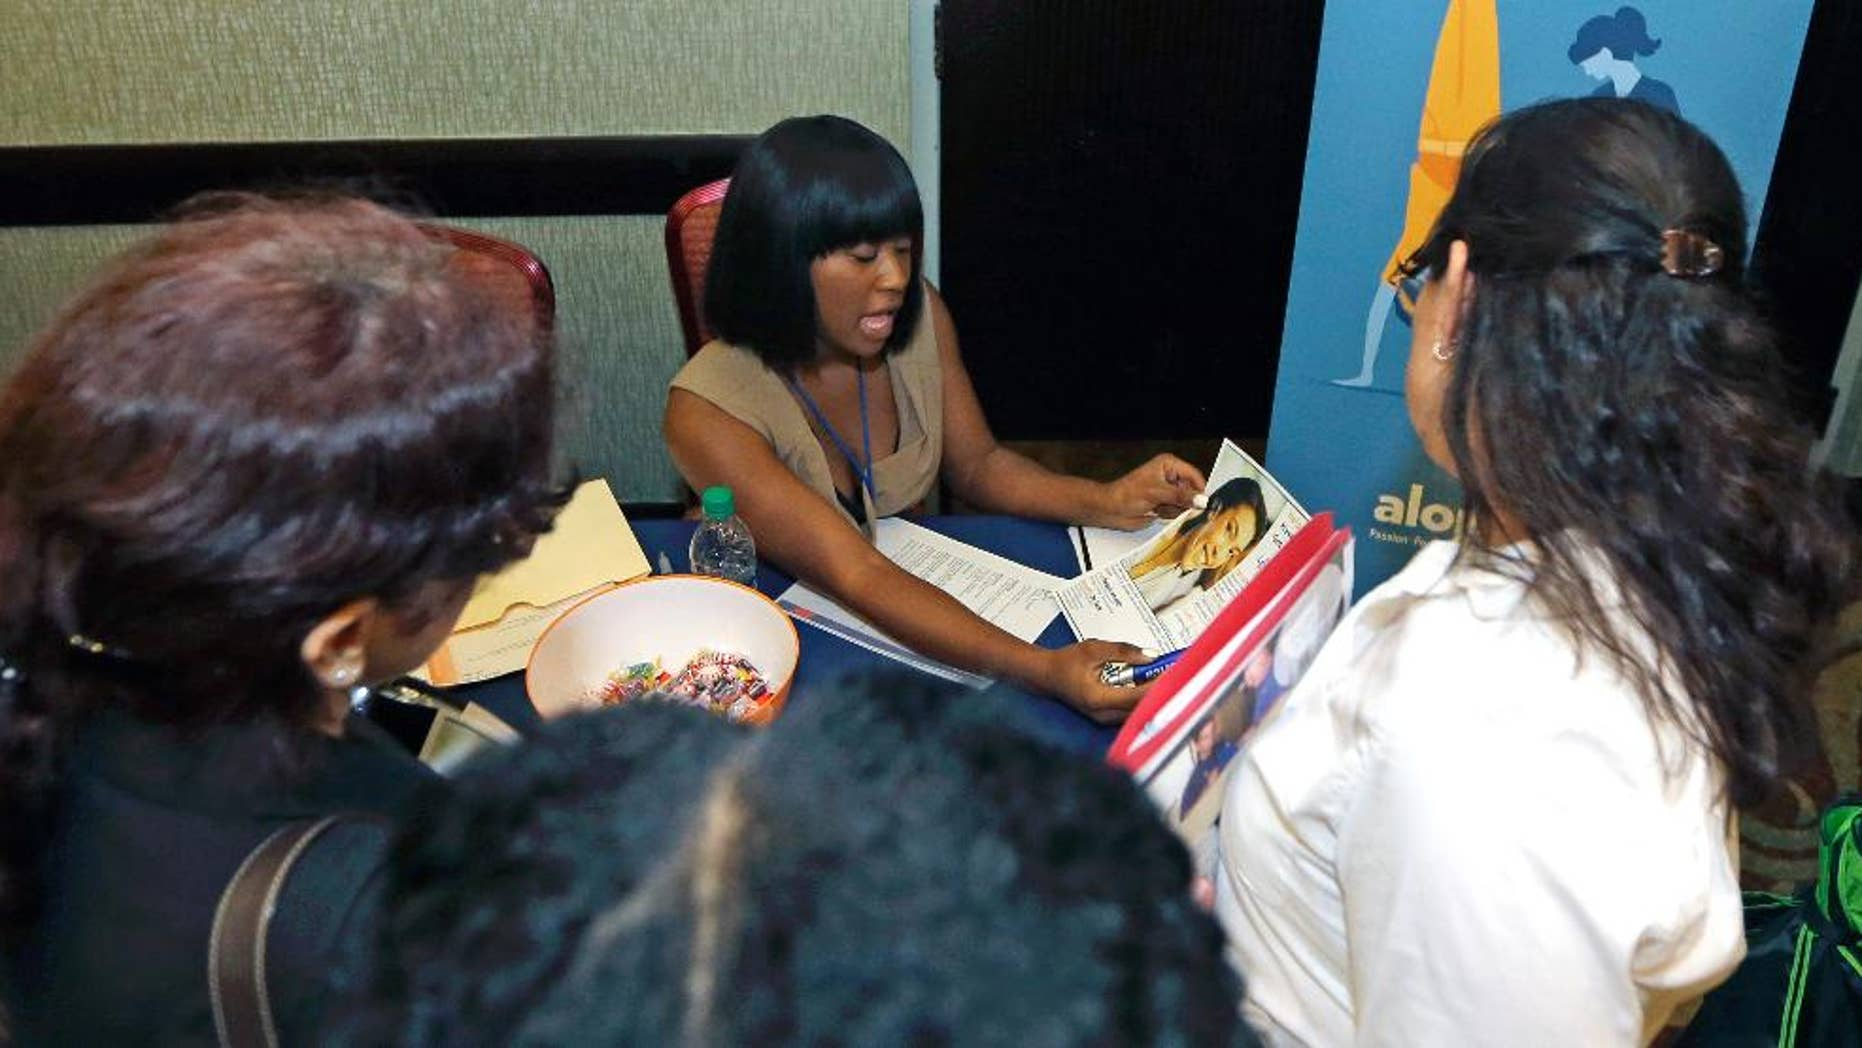 In this photo taken Wednesday, July 15, 2015, Janell Maycock gives information about job opportunities to job seekers at a job fair in Miami Lakes, Fla.  Payroll processor ADP reports how many jobs private employers added in August on Wednesday, Sept. 2, 2015. (AP Photo/Alan Diaz)